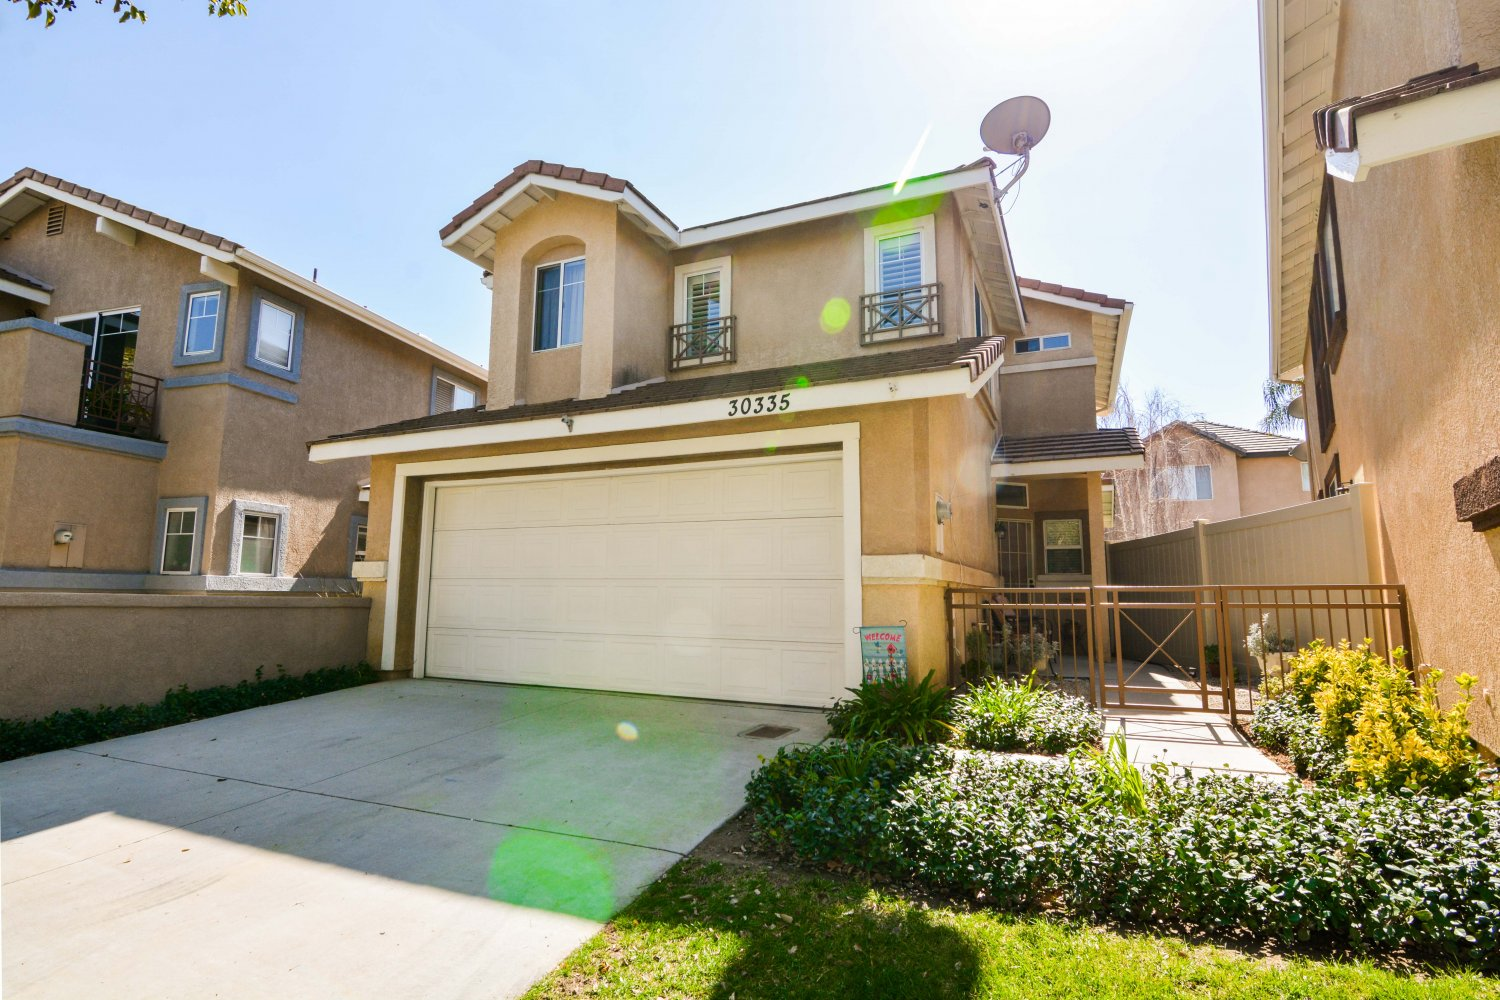 30335 Marigold Cir | Photo 3